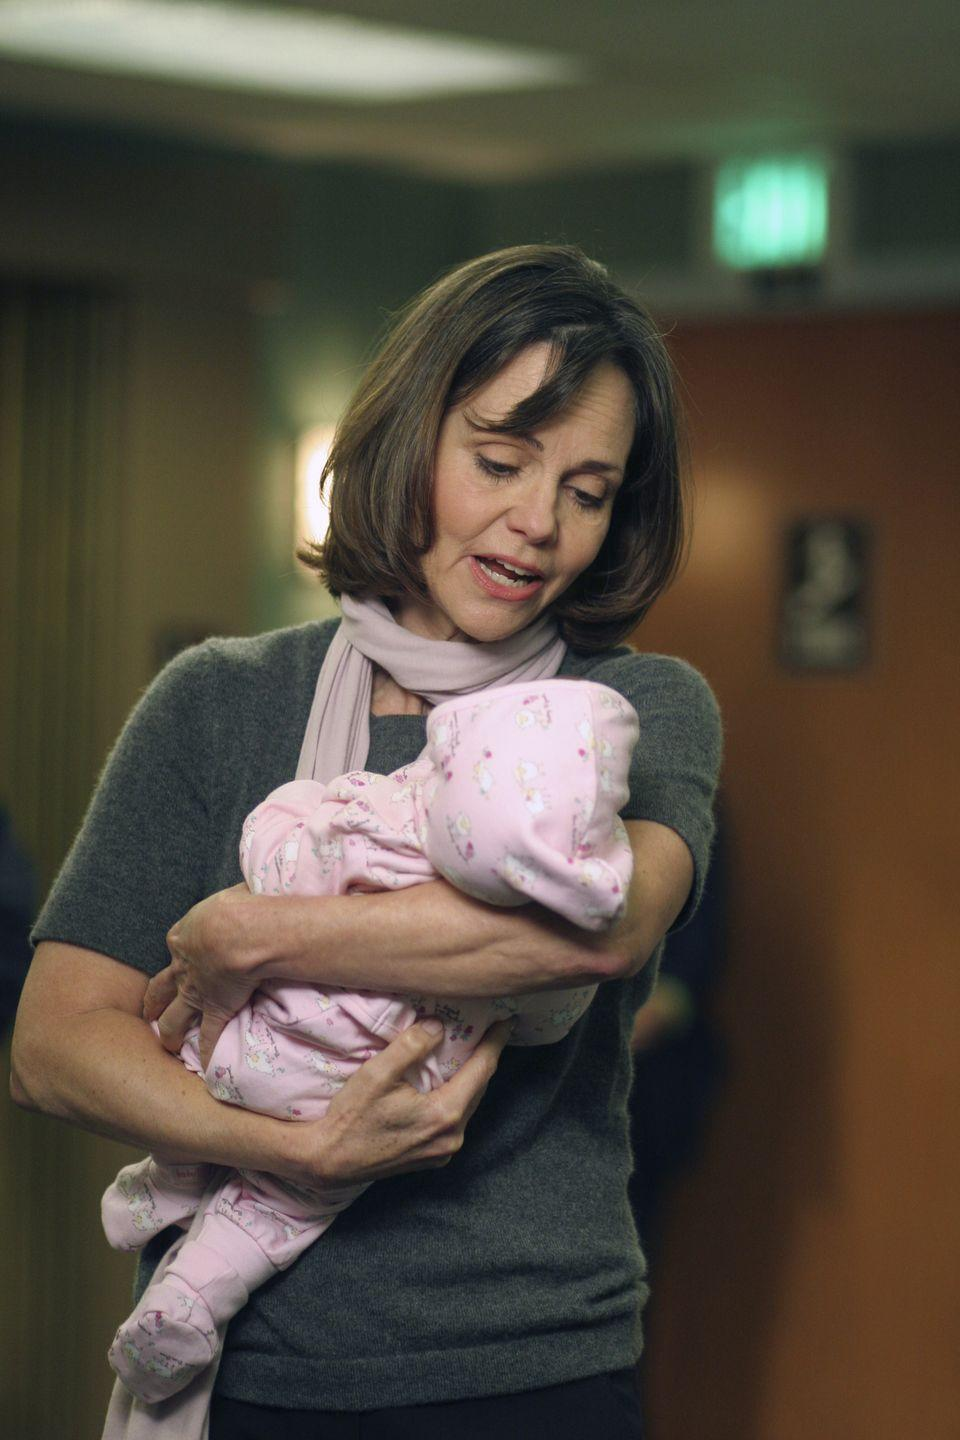 <p>Sally Field played the reoccurring role of Abby Lockhart's (Maura Tierney) mother, Maggie Wyczenski. Although her character's relationship with the rest of the characters was complicated, Field continued to make guest appearances from 2000 until 2006. </p>